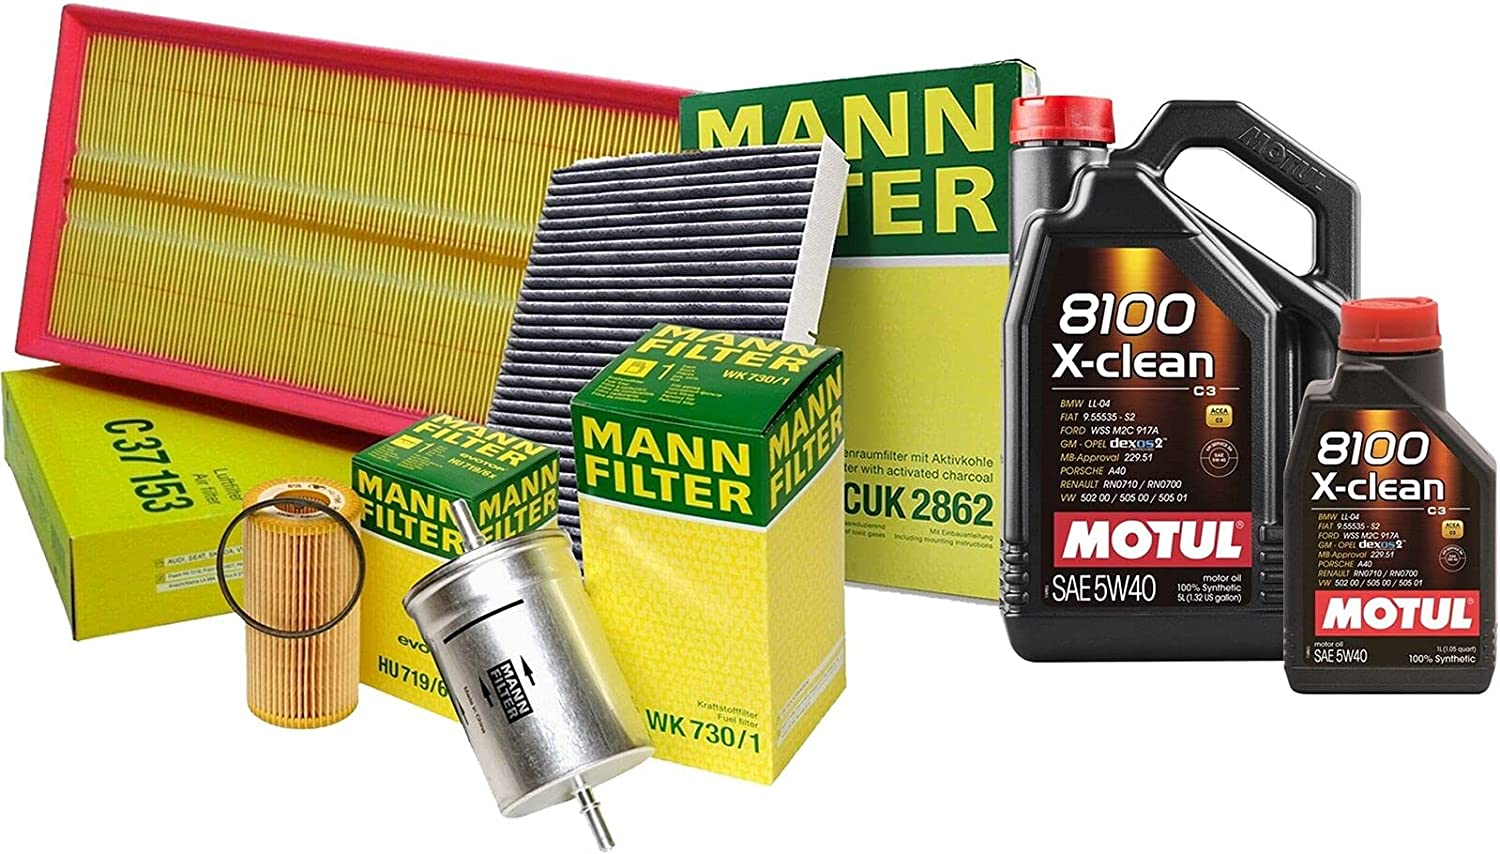 6L 8100 X-CLEAN 5W40 Factory outlet Oil Filter Beet kit with Classic Service Compatible